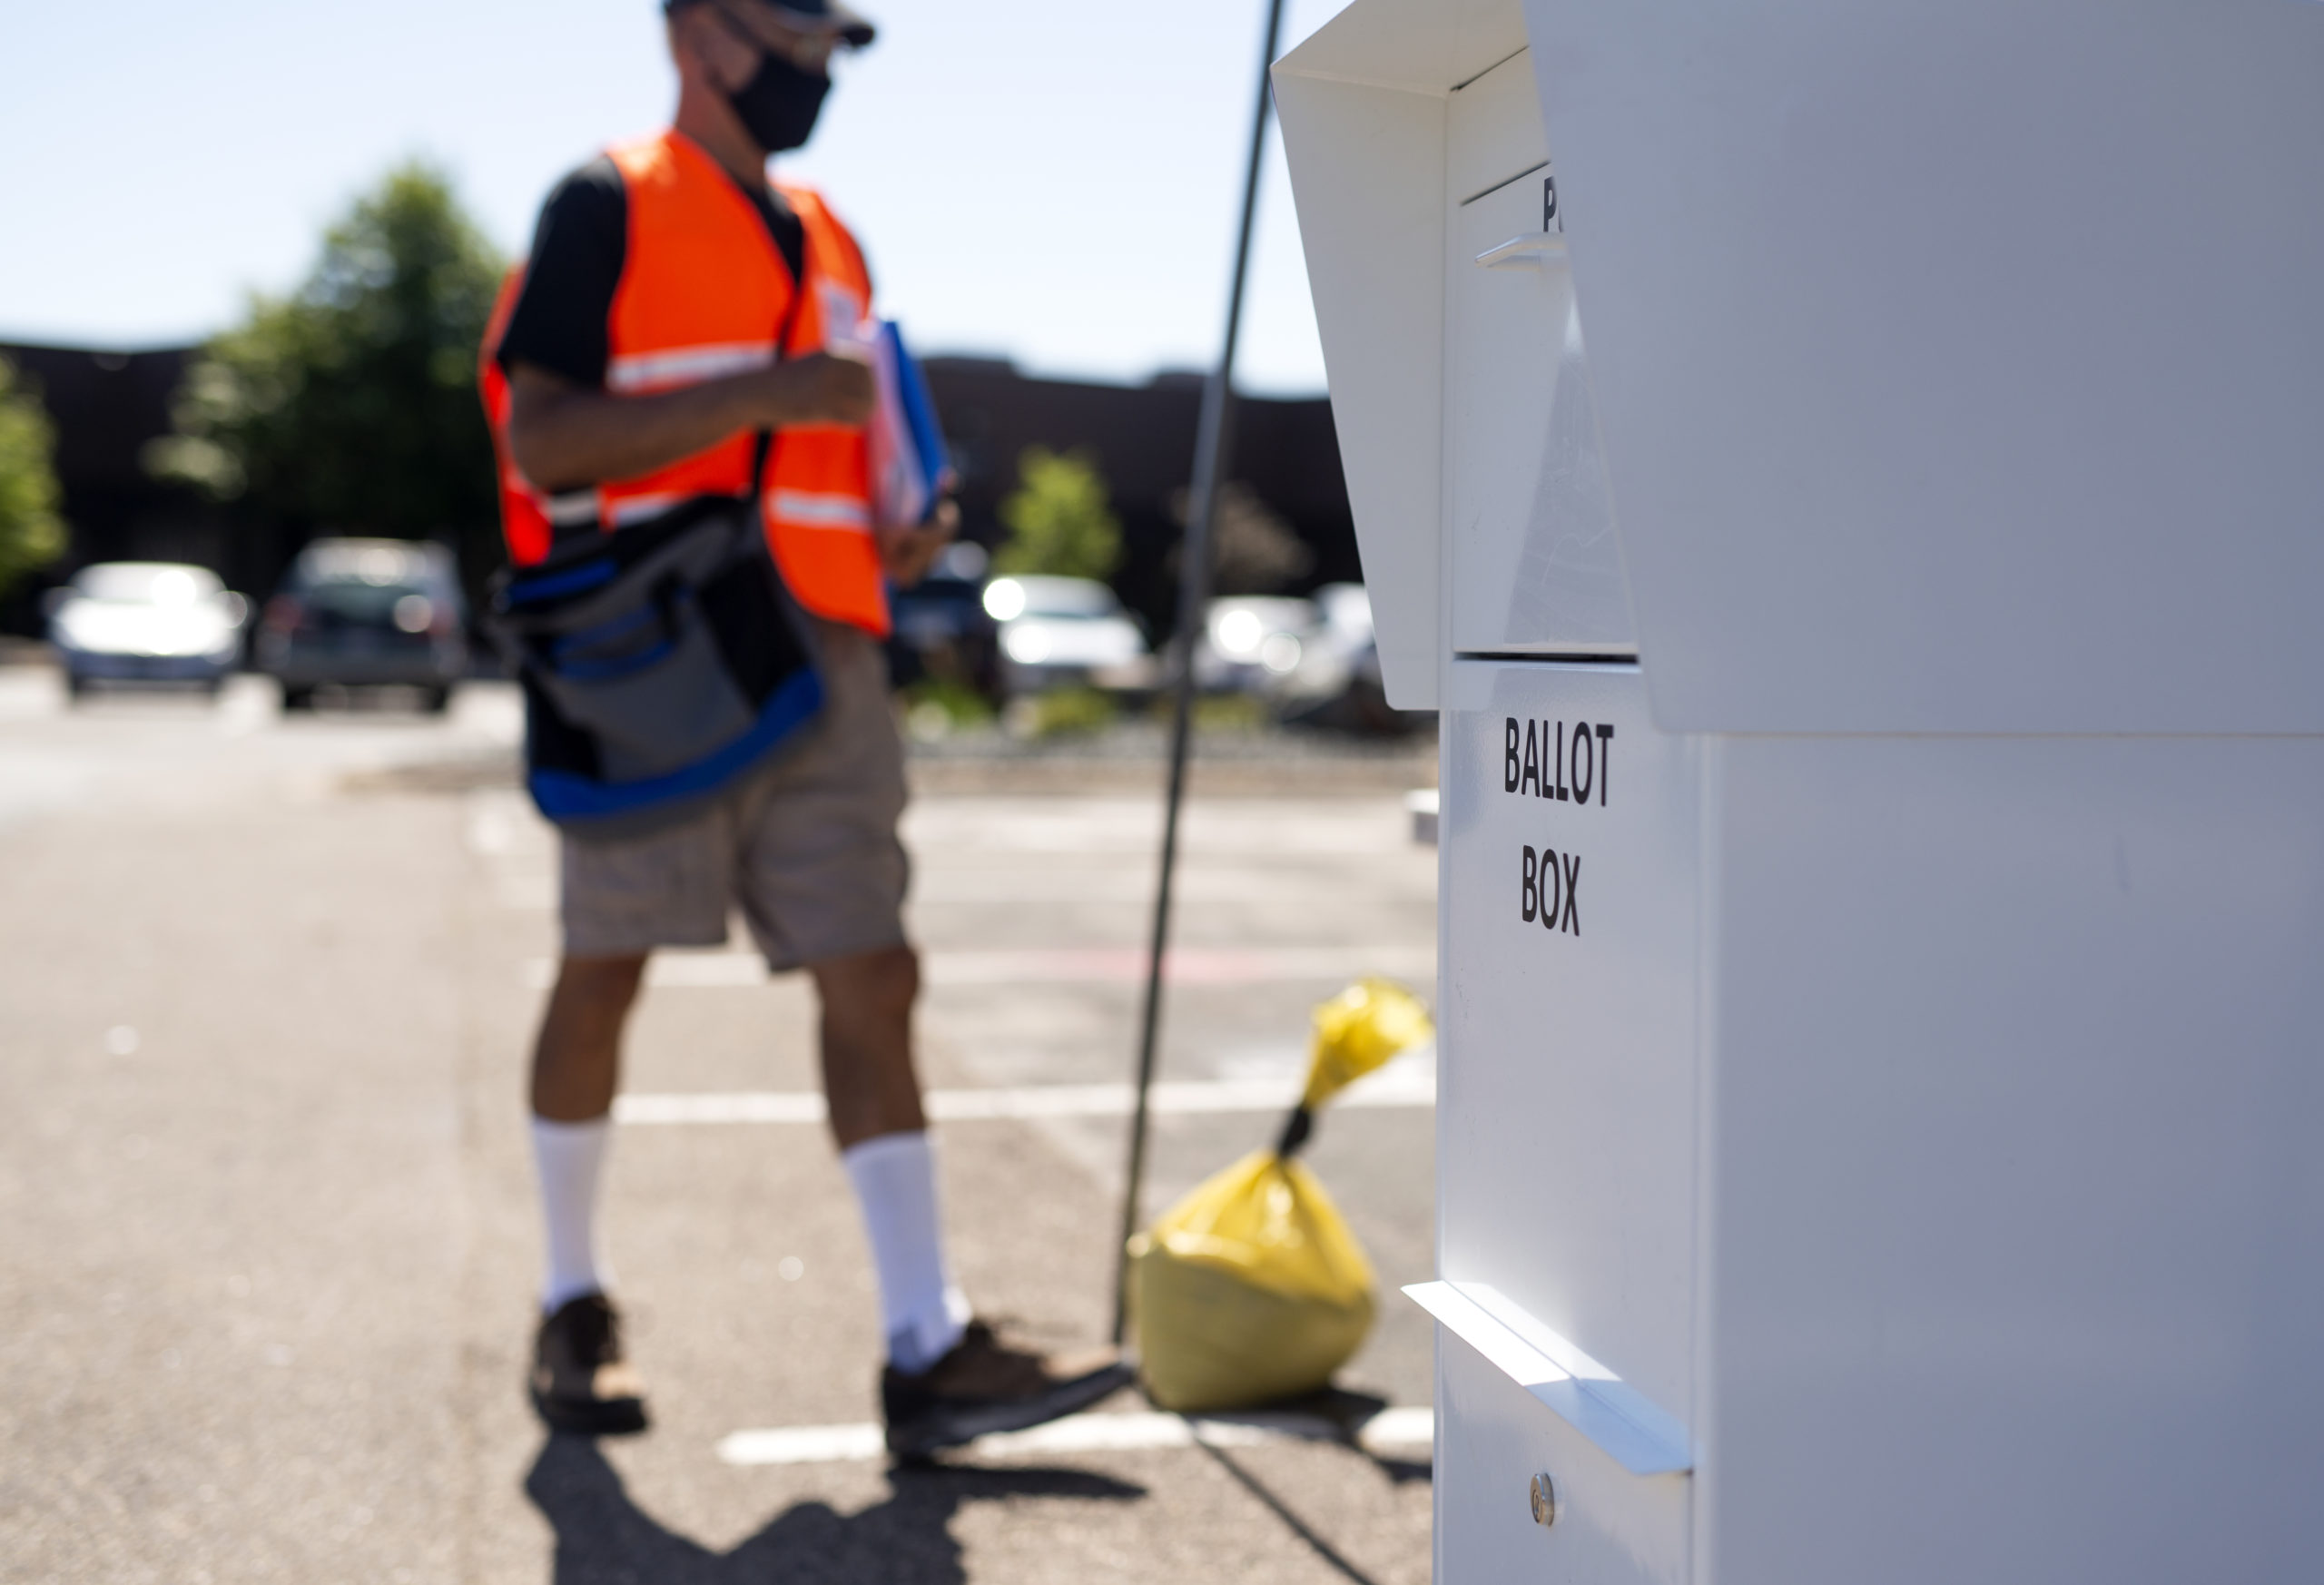 MINNEAPOLIS, MN - AUGUST 11: A ballot box stands at a drive through drop-off for absentee ballots on August 11, 2020 in Minneapolis, Minnesota. Voters in Minneapolis were able to drop off their mail-in ballots in person at two different locations, which were made available temporarily to assuage fears of delay in USPS delivery. (Photo by Stephen Maturen/Getty Images)